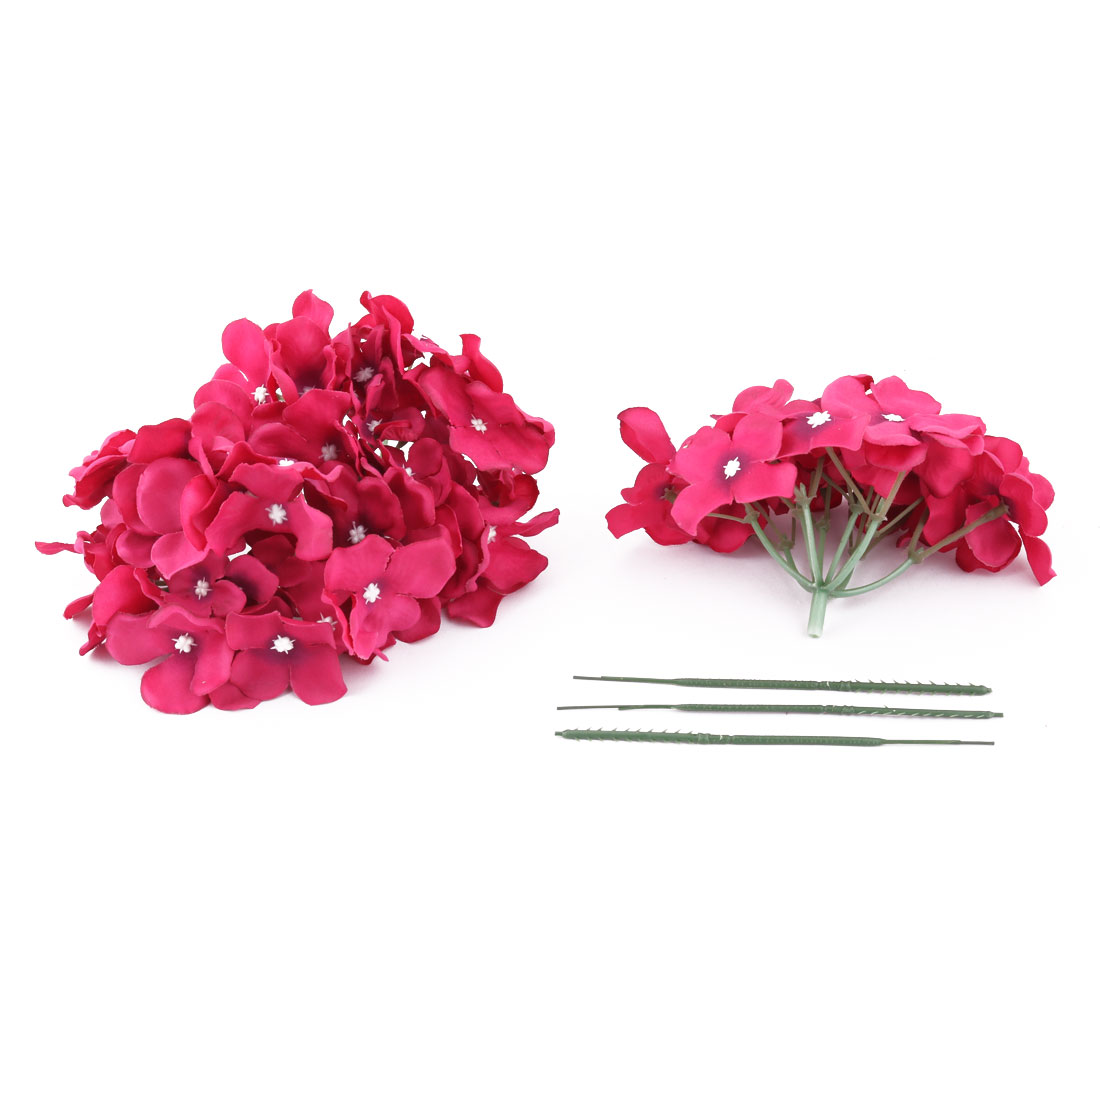 Wedding Fabric Emulation Artificial Flower Head Decorative Petals Craft Fuchsia 3pcs